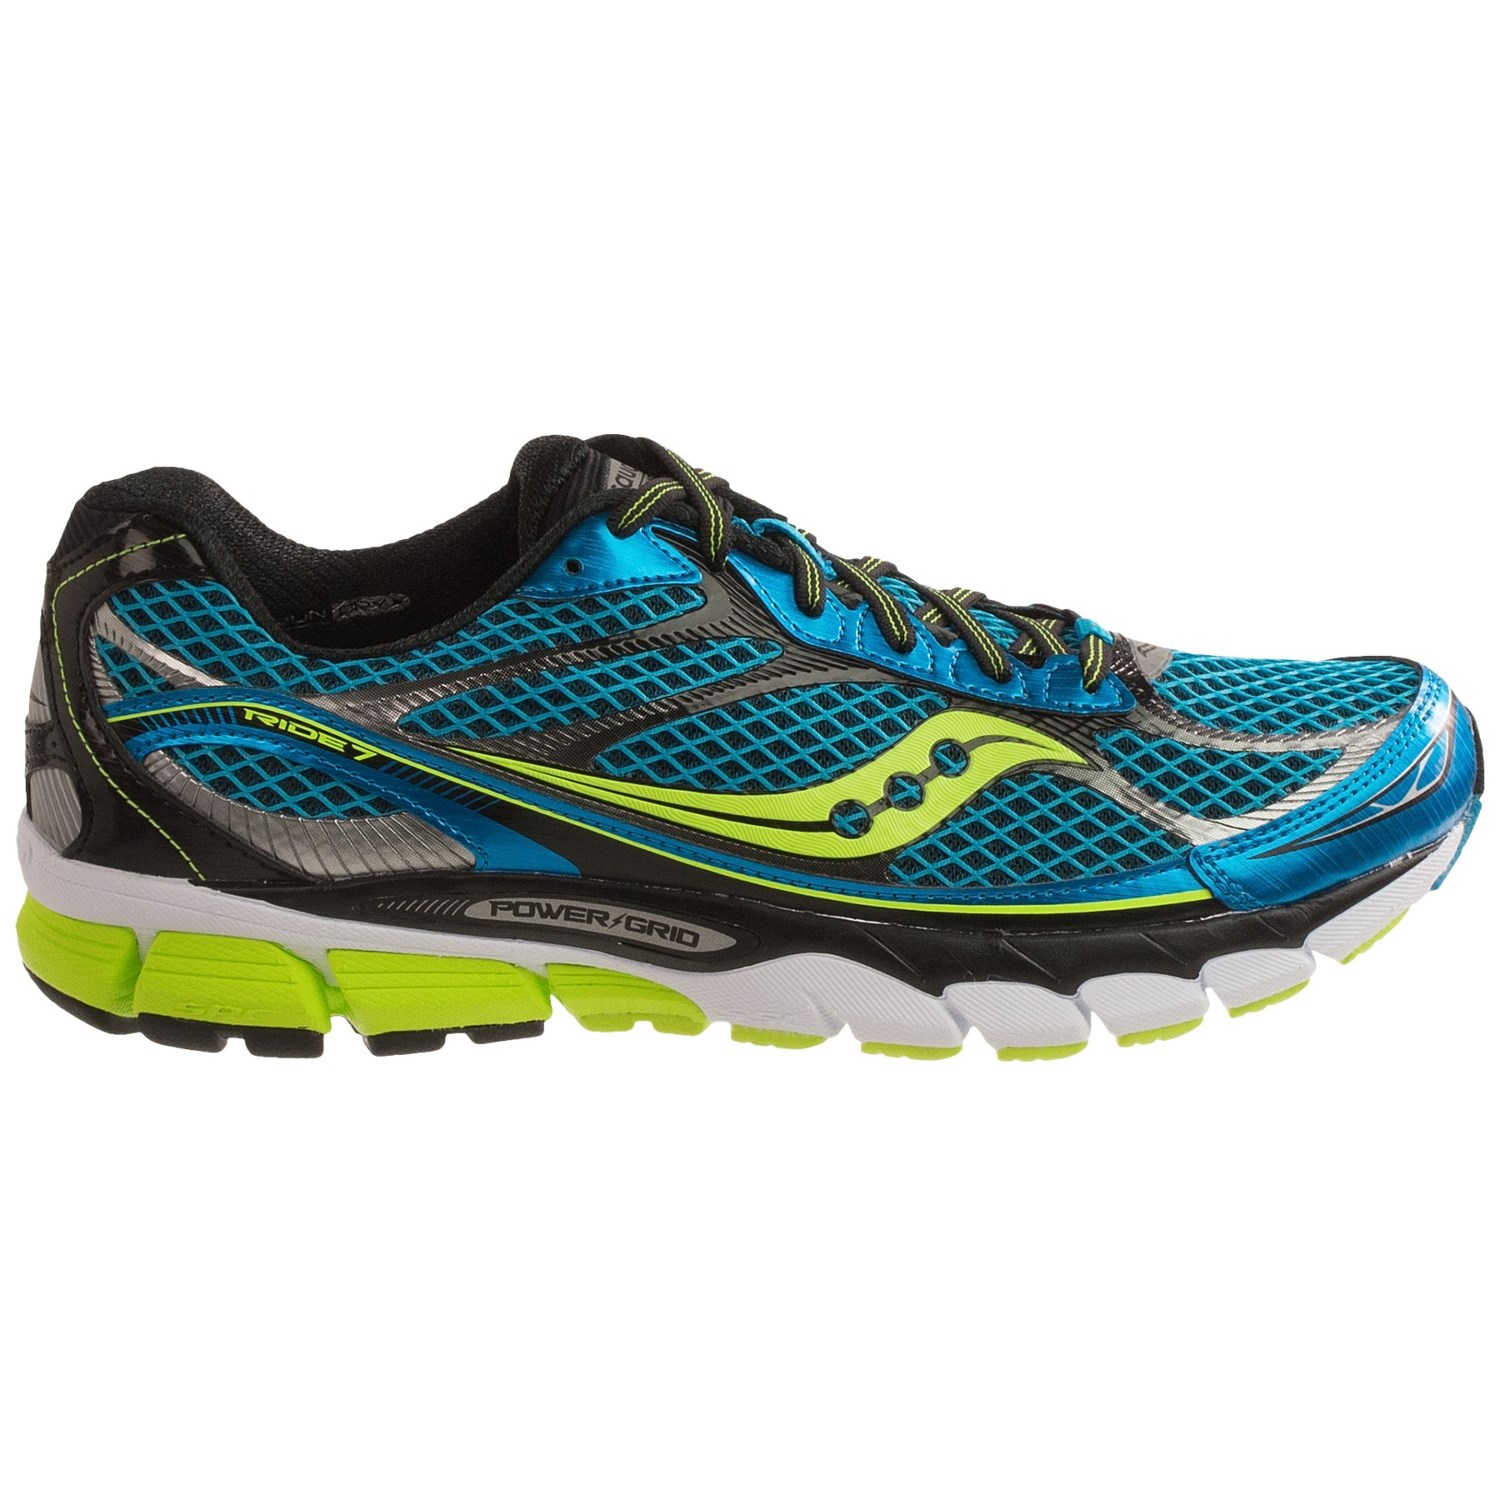 saucony ride 7 running shoes for 8595p save 41